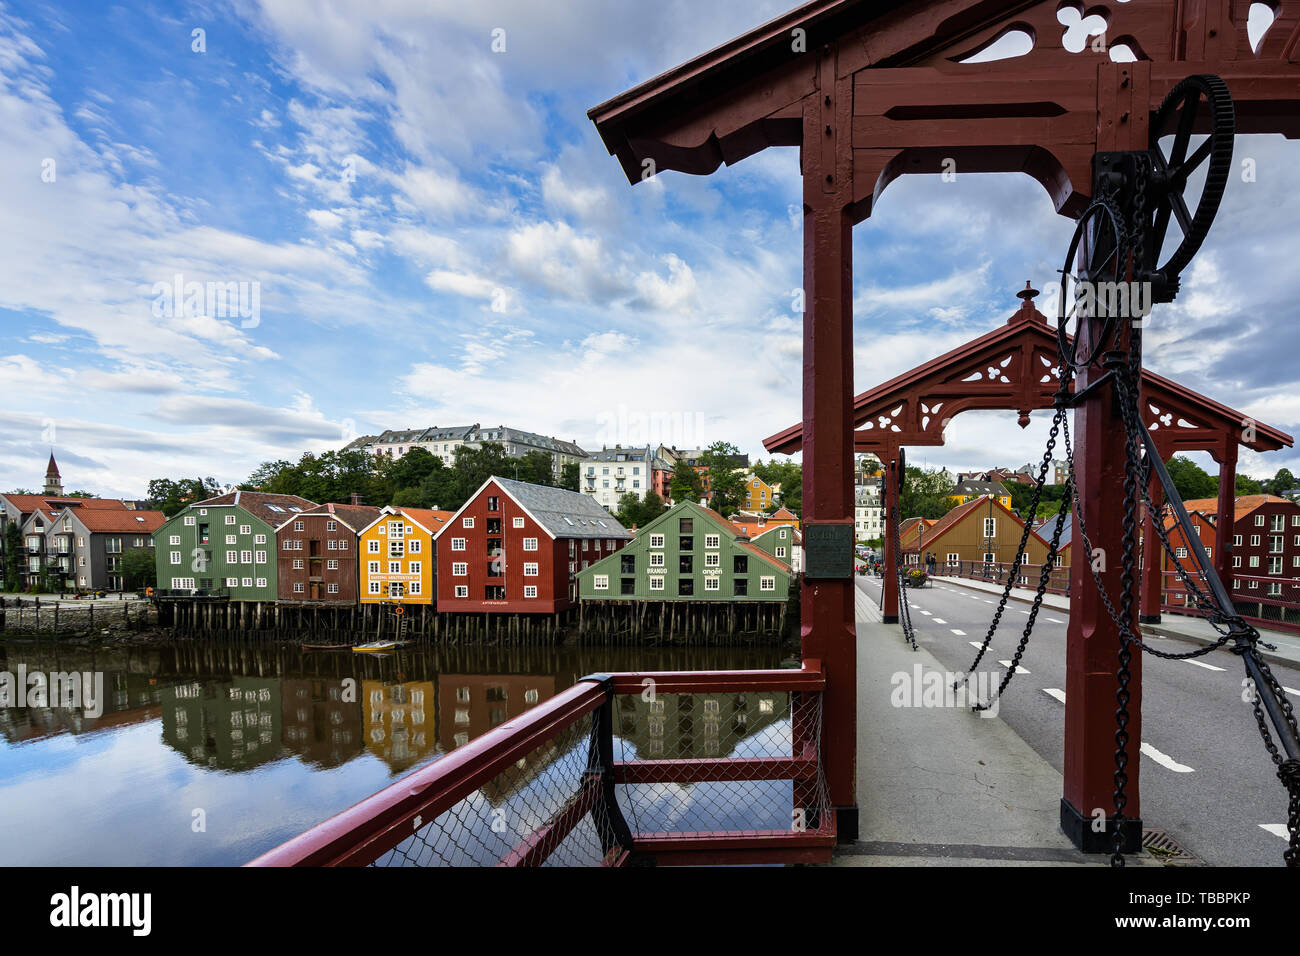 Detail of Gamle Bybro, the bridge crosses the Nidelva River connecting the main street Kjopmannsgata to Bakklandet district, Trondheim, Norway Stock Photo